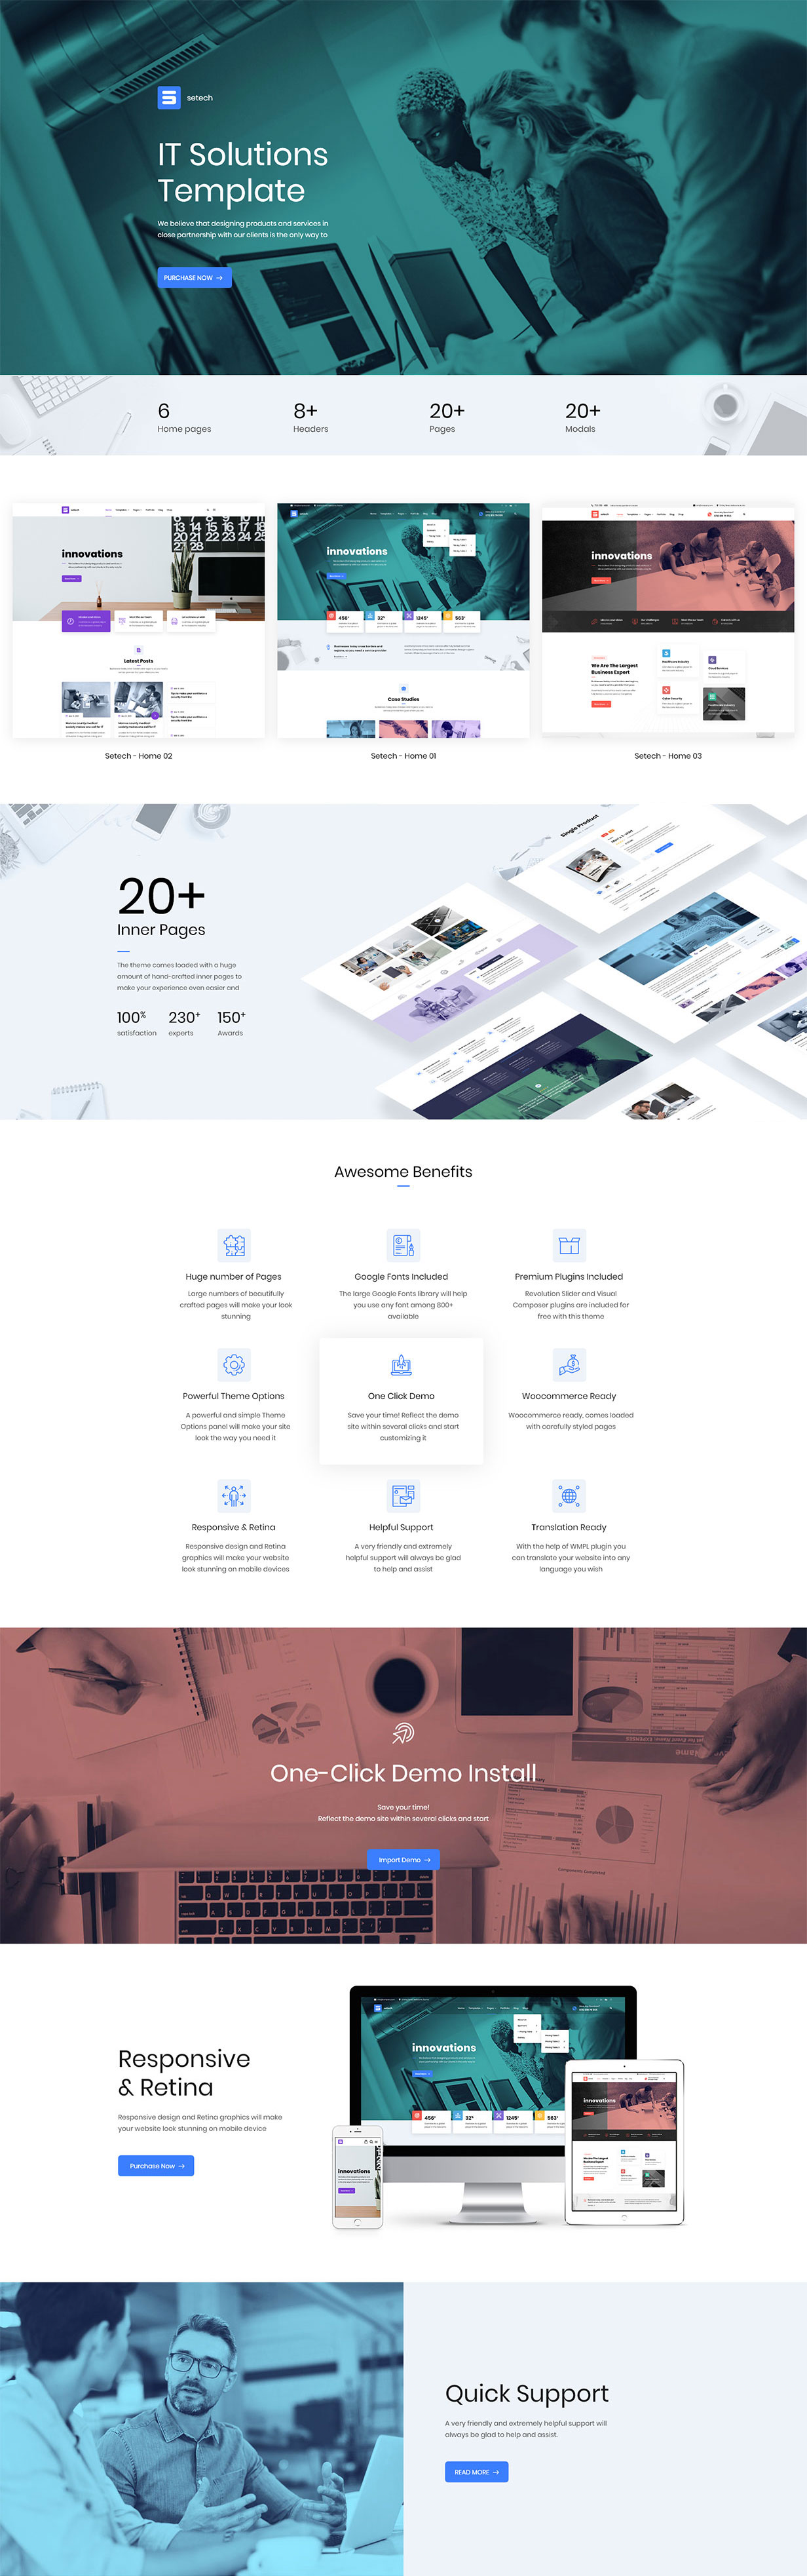 Latest Photo of  Setech IT Services and Solutions WordPress Theme